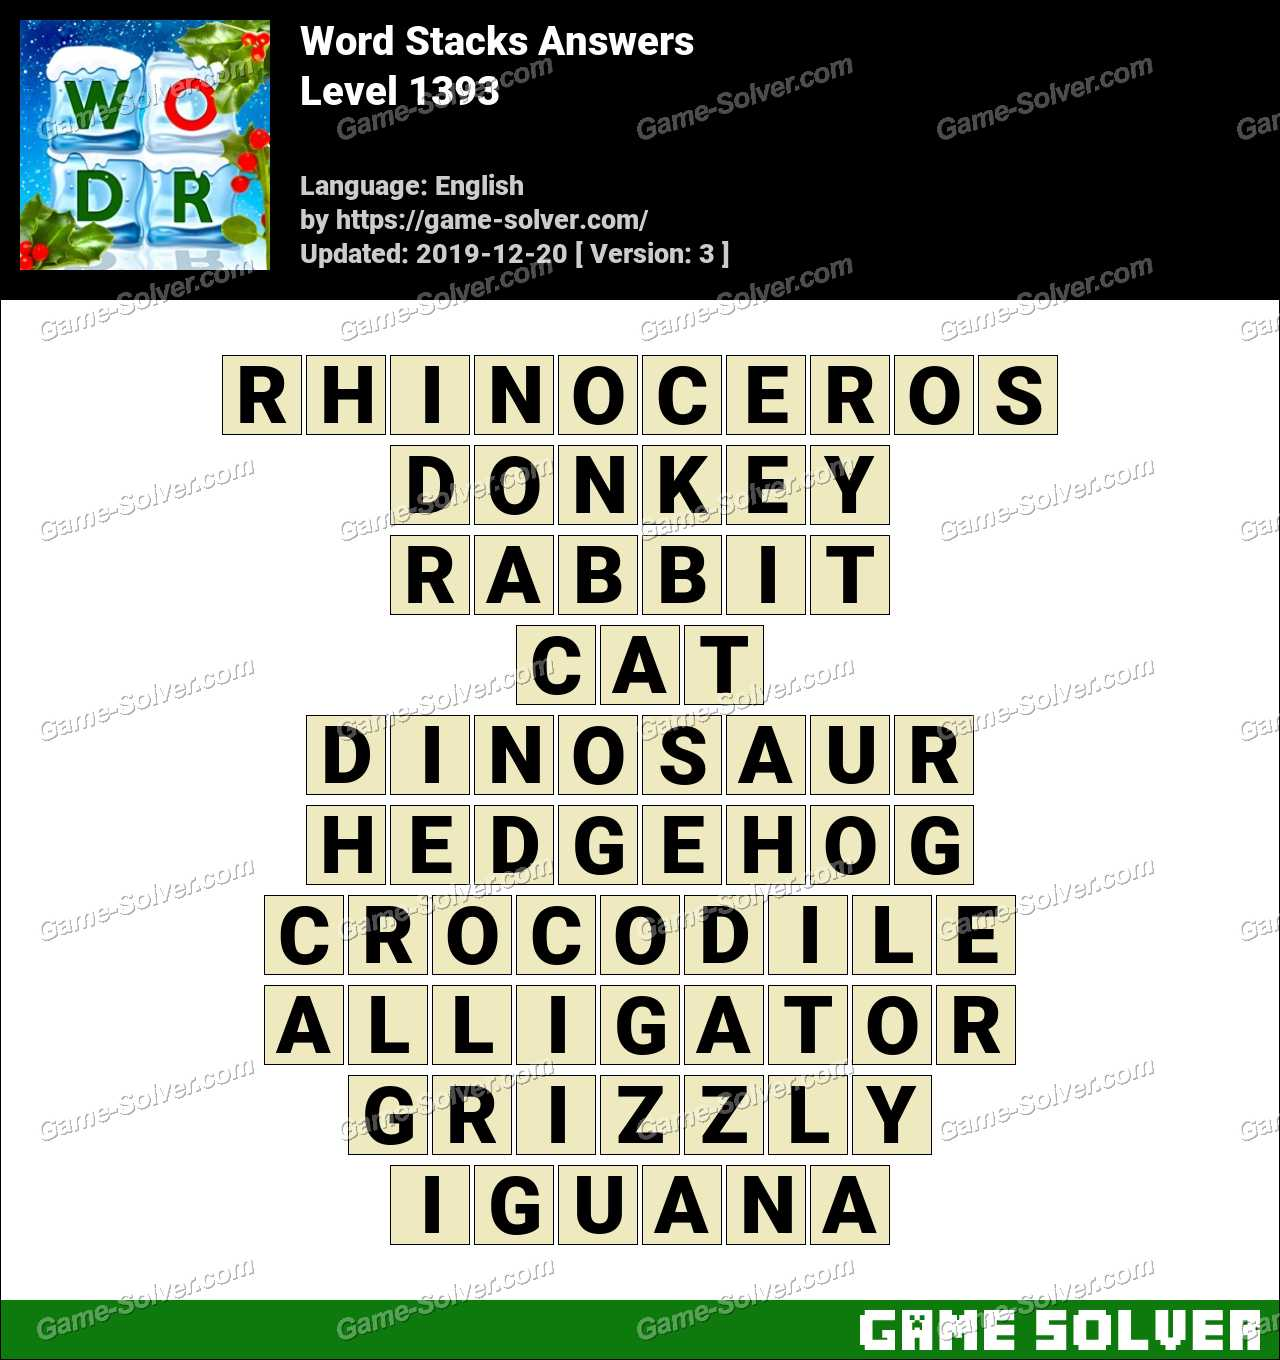 Word Stacks Level 1393 Answers